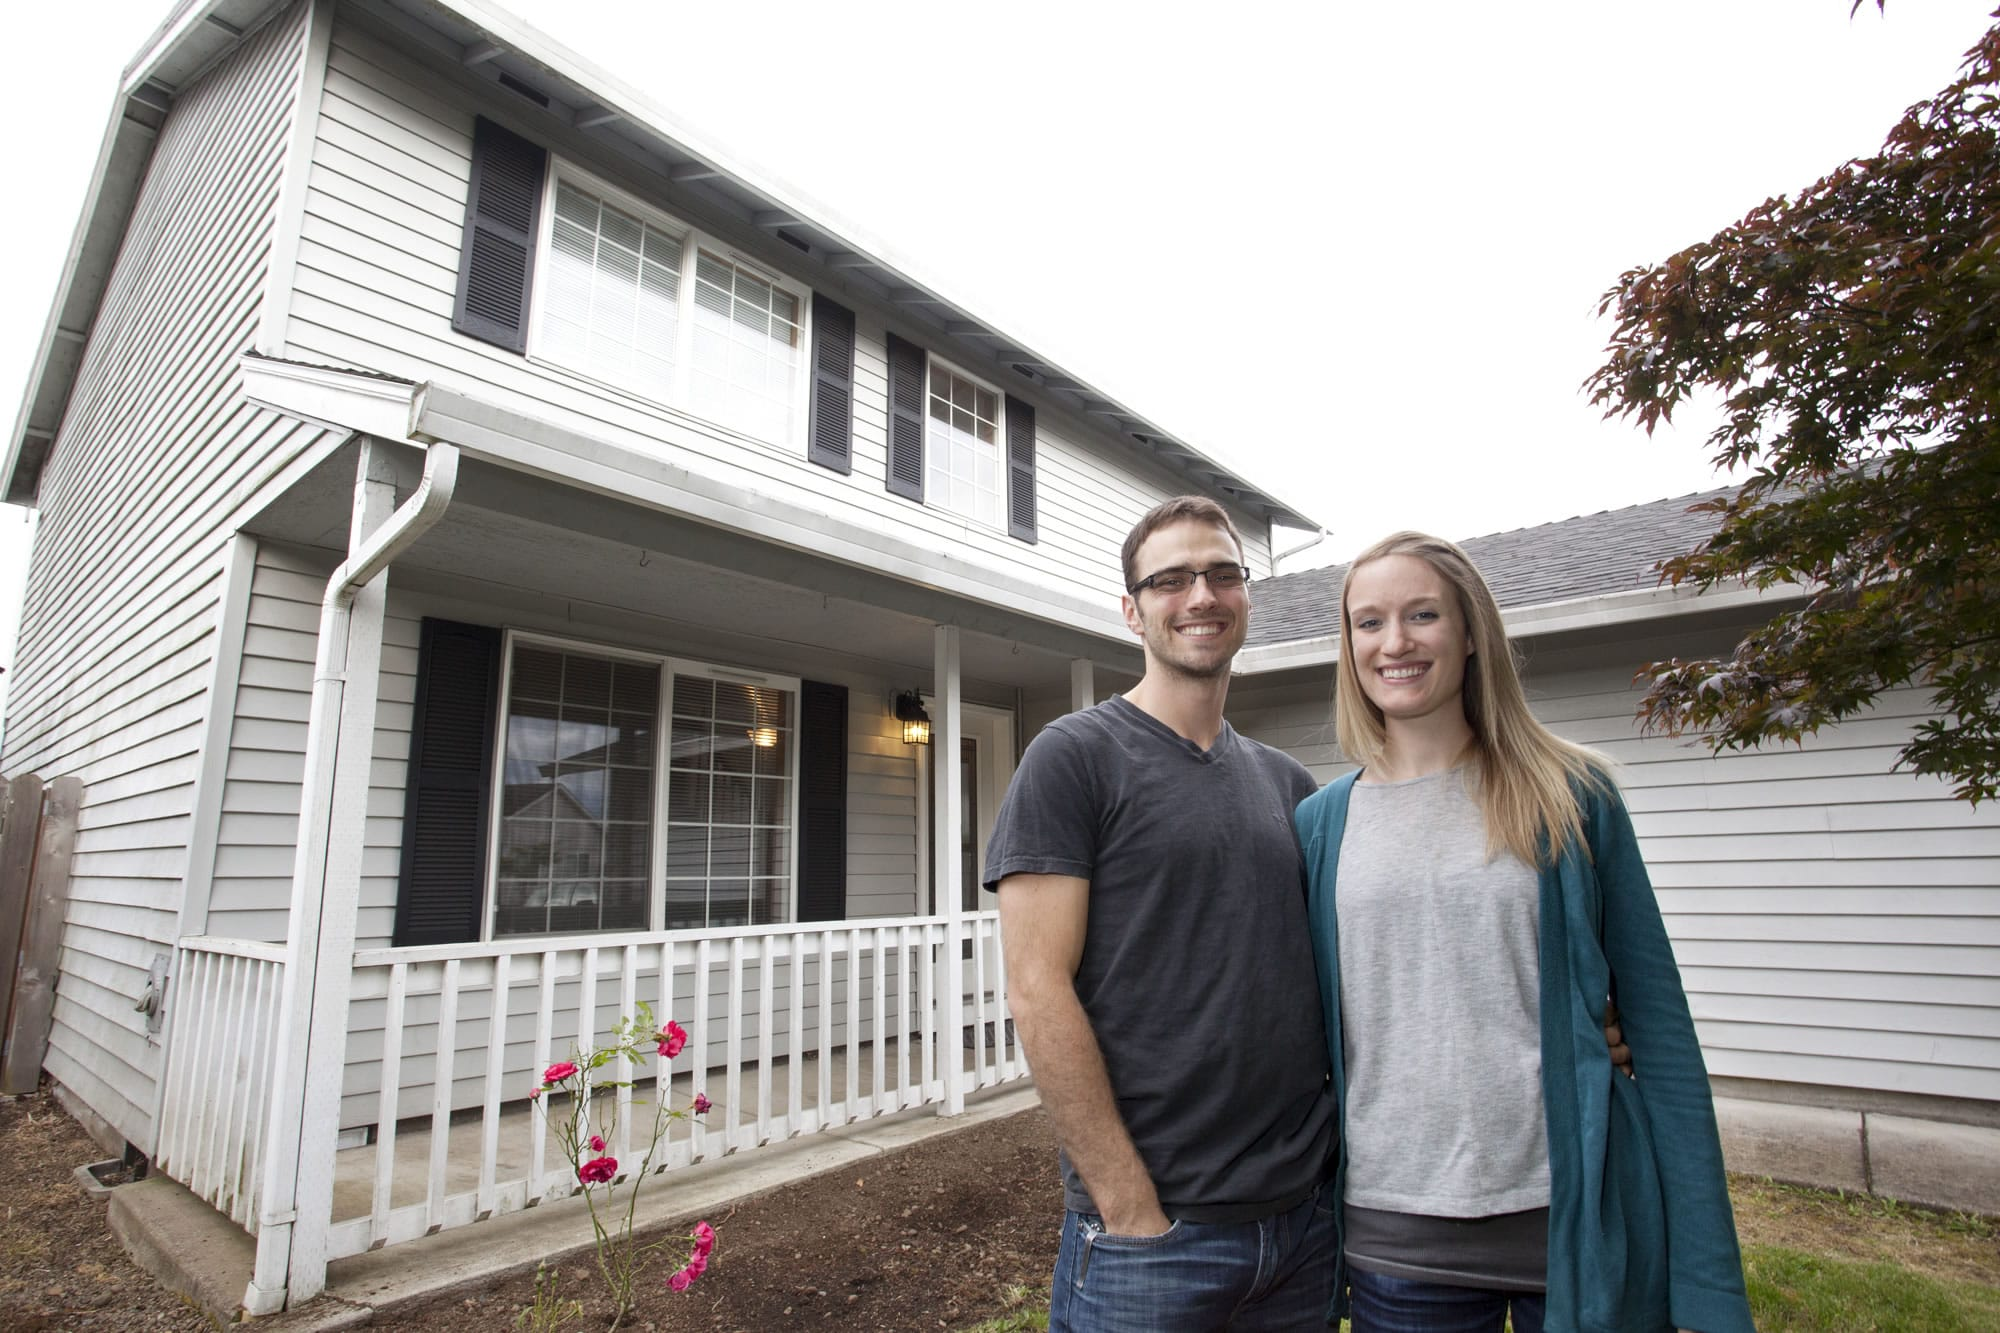 Hans and Amy Vierck had to install flooring in the home they wanted to buy on a short sale before their bank would approve a loan.